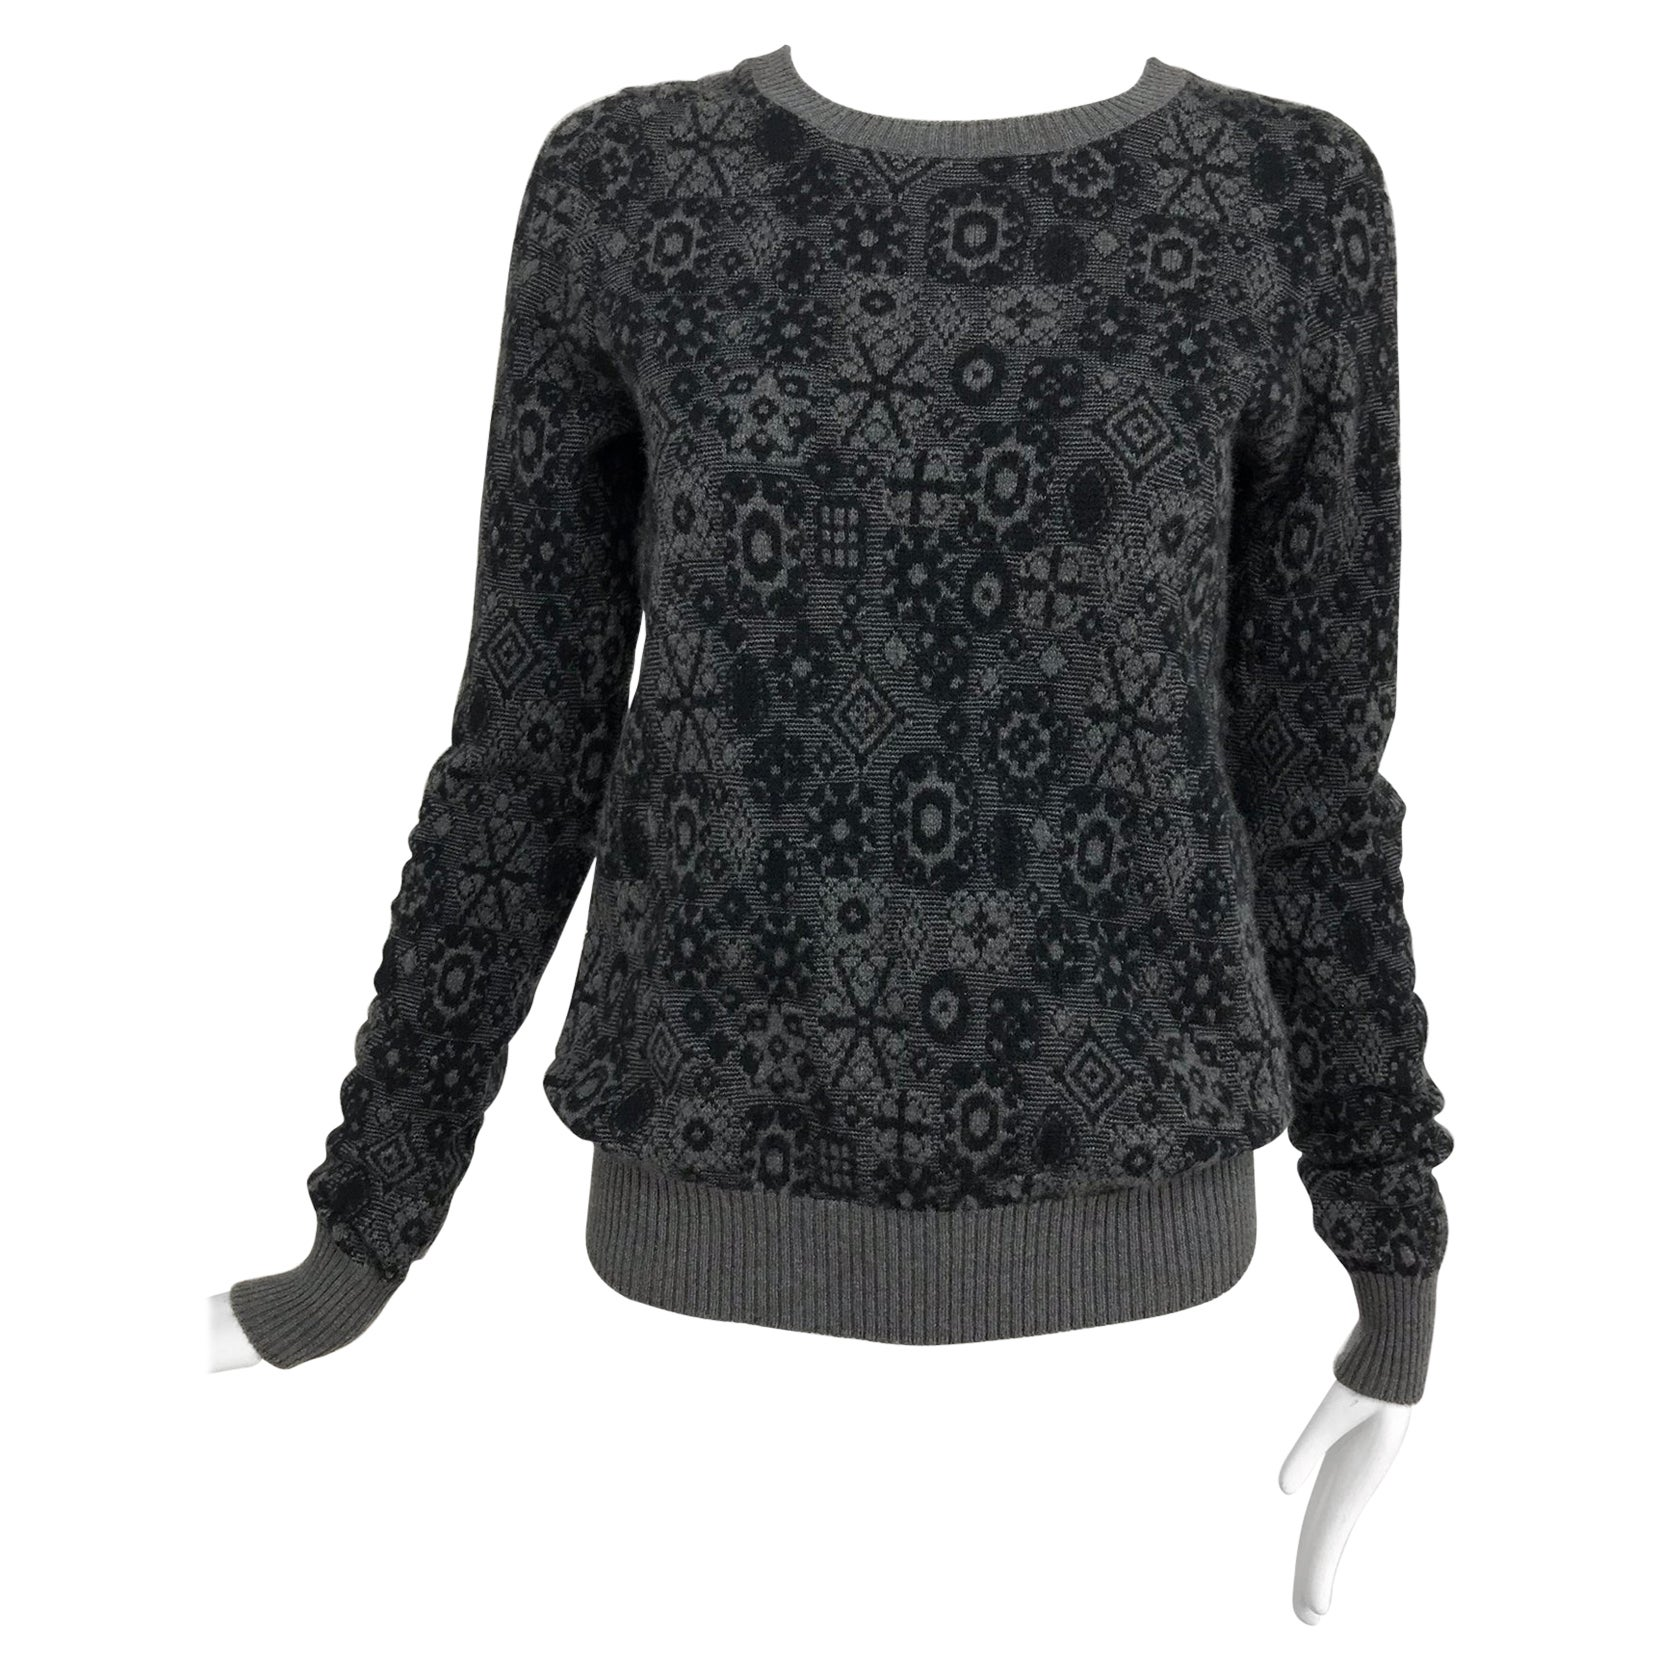 Chanel grey cashmere pull on sweater